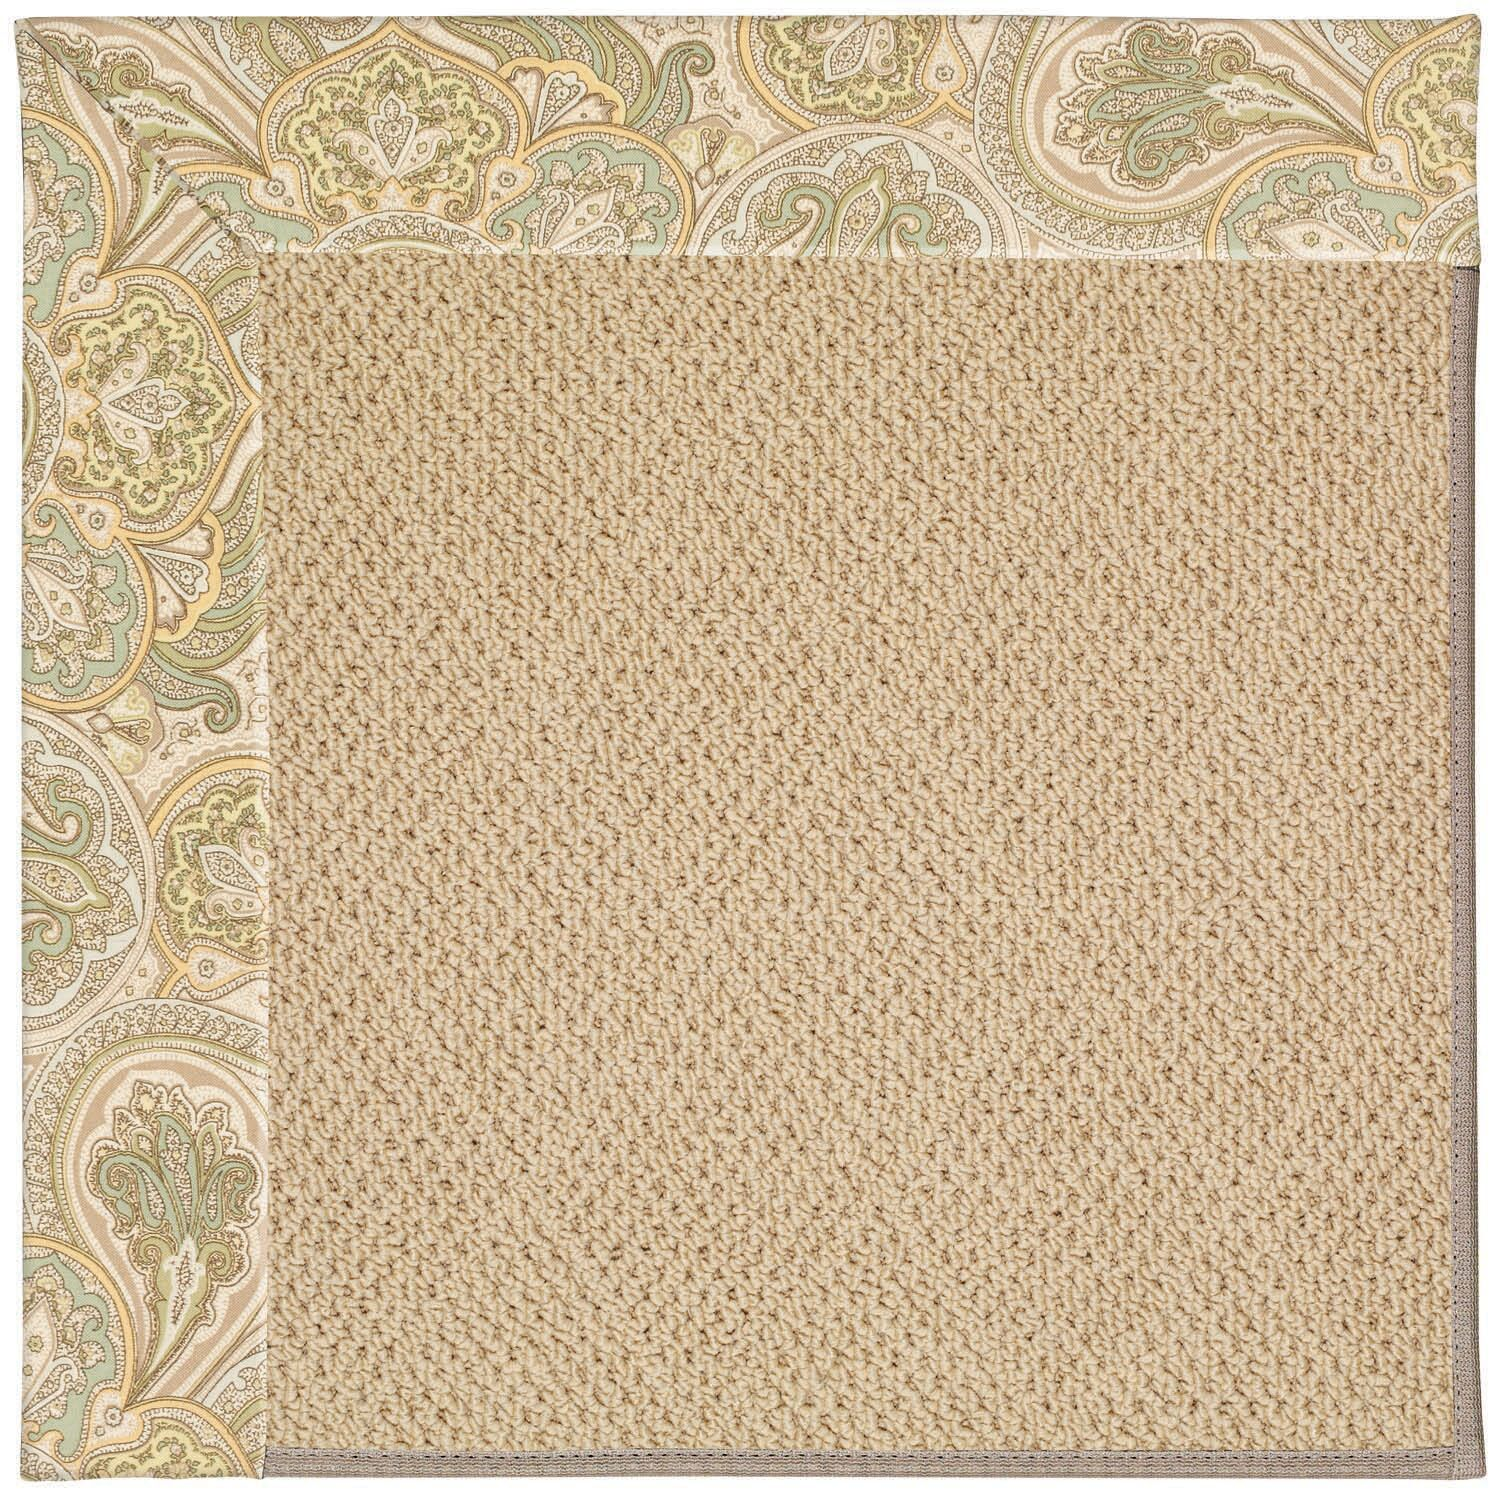 Lisle Machine Tufted Quarry/Brown Indoor/Outdoor Area Rug Rug Size: Rectangle 8' x 10'